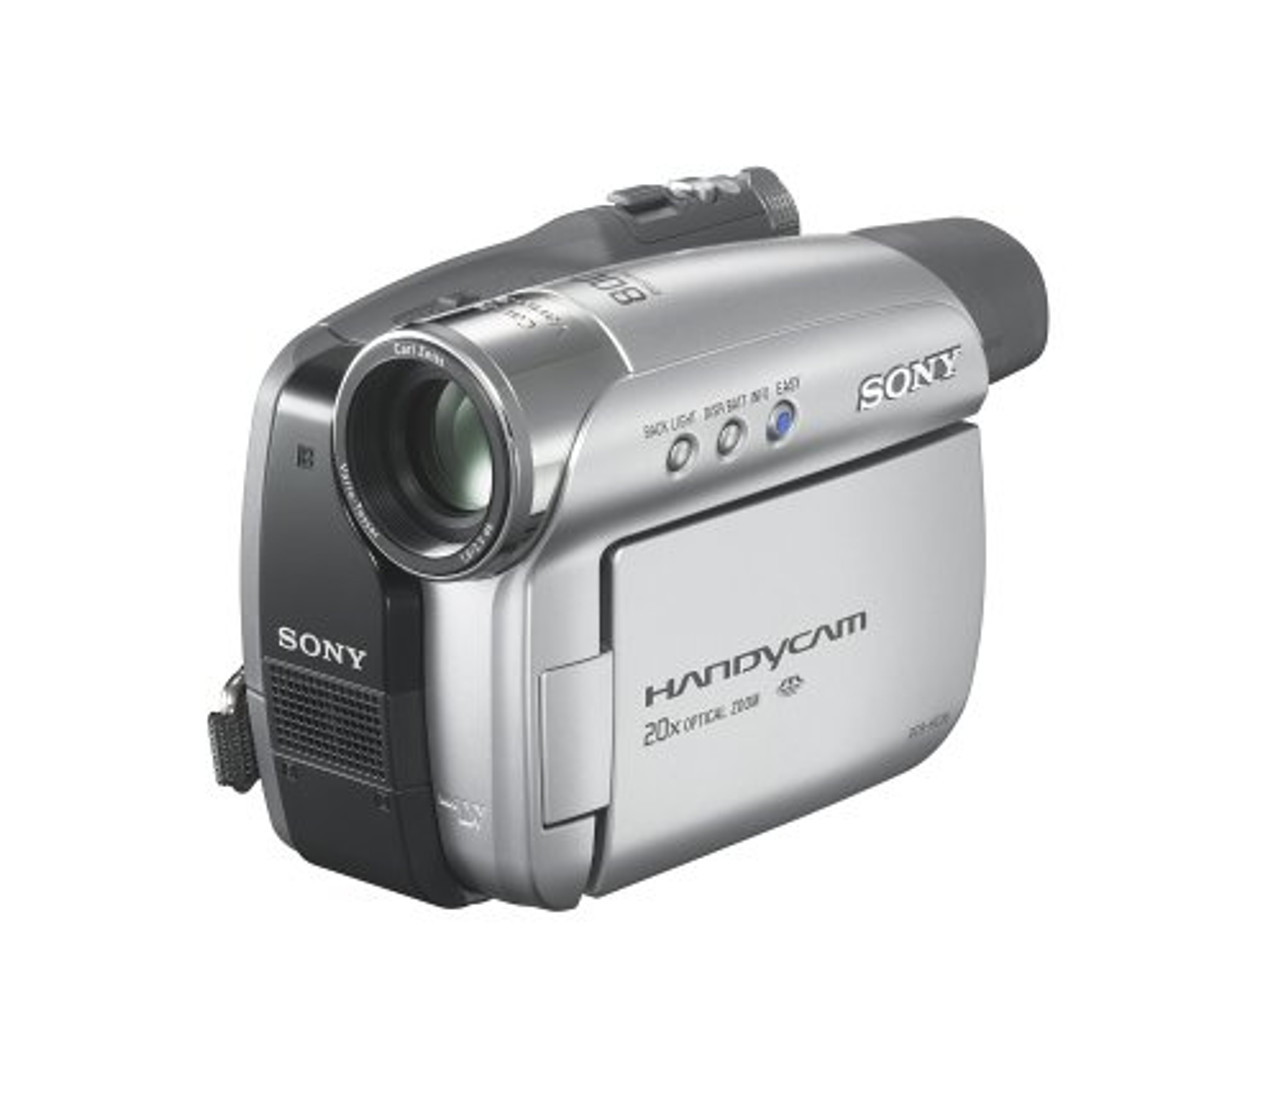 Sony DCR-HC36 MiniDV Digital Handycam Camcorder with 20x Optical Zoom